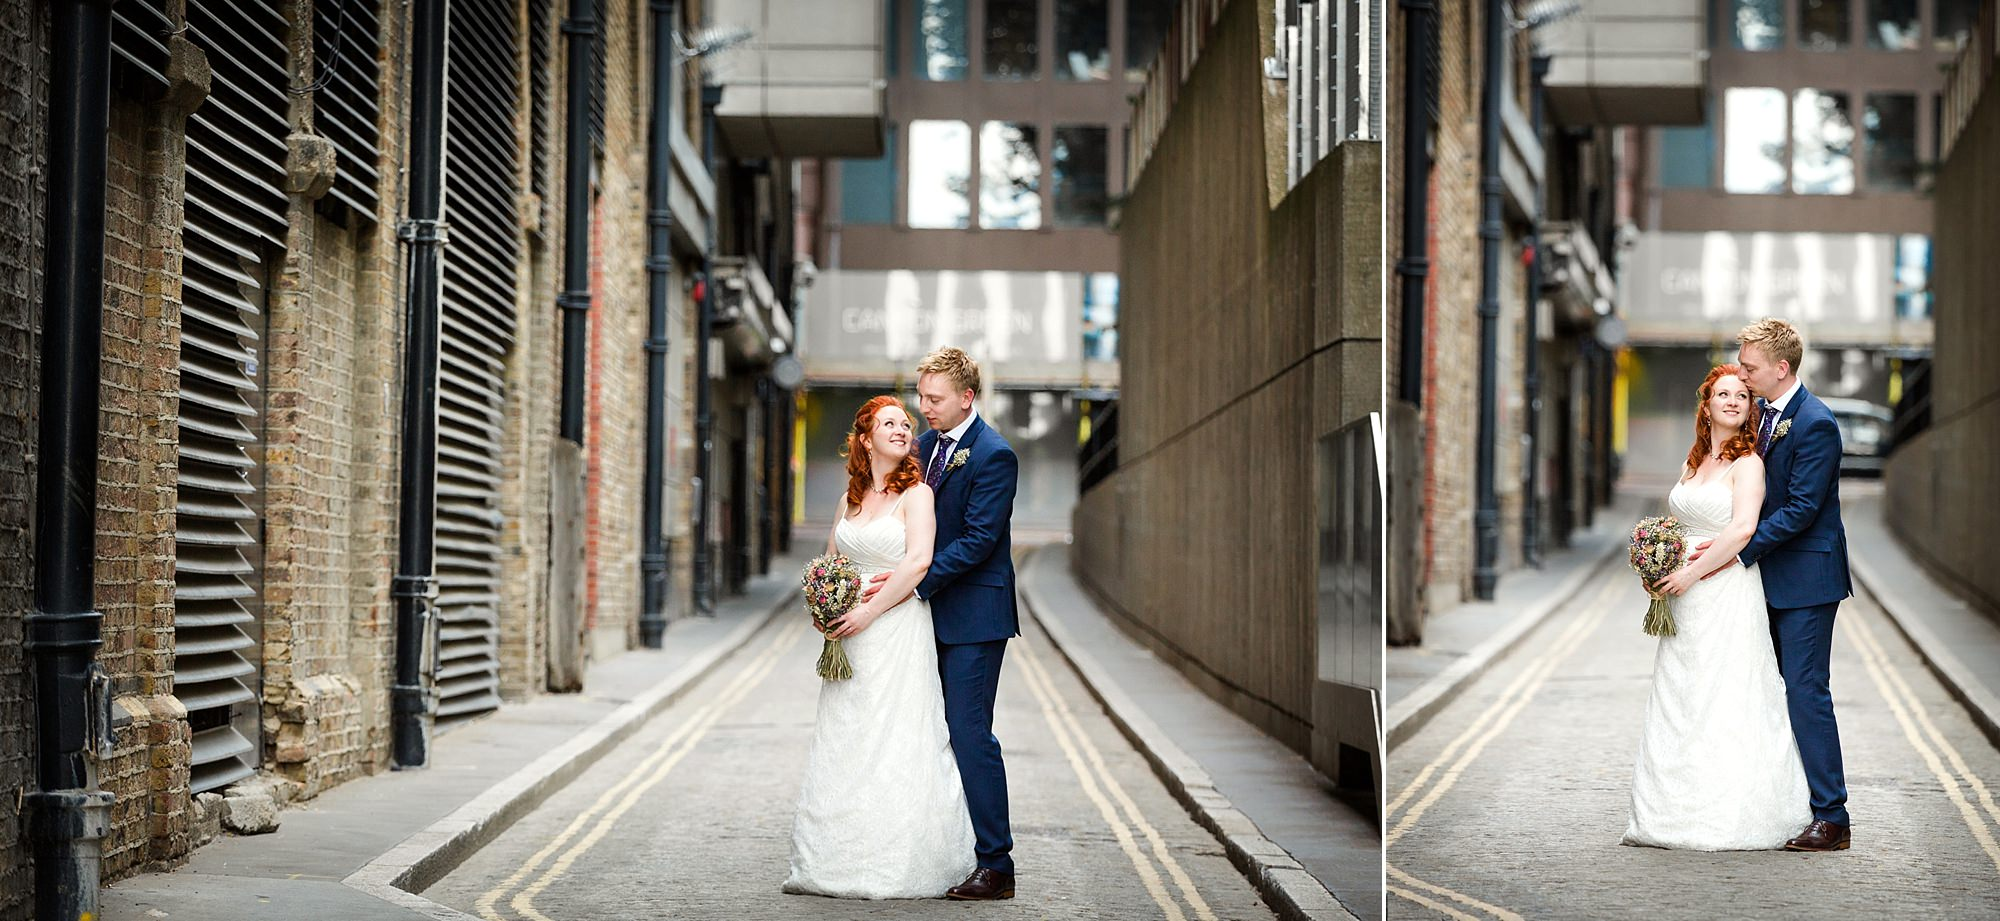 oyster shed wedding portrait of bride and groom together in London street